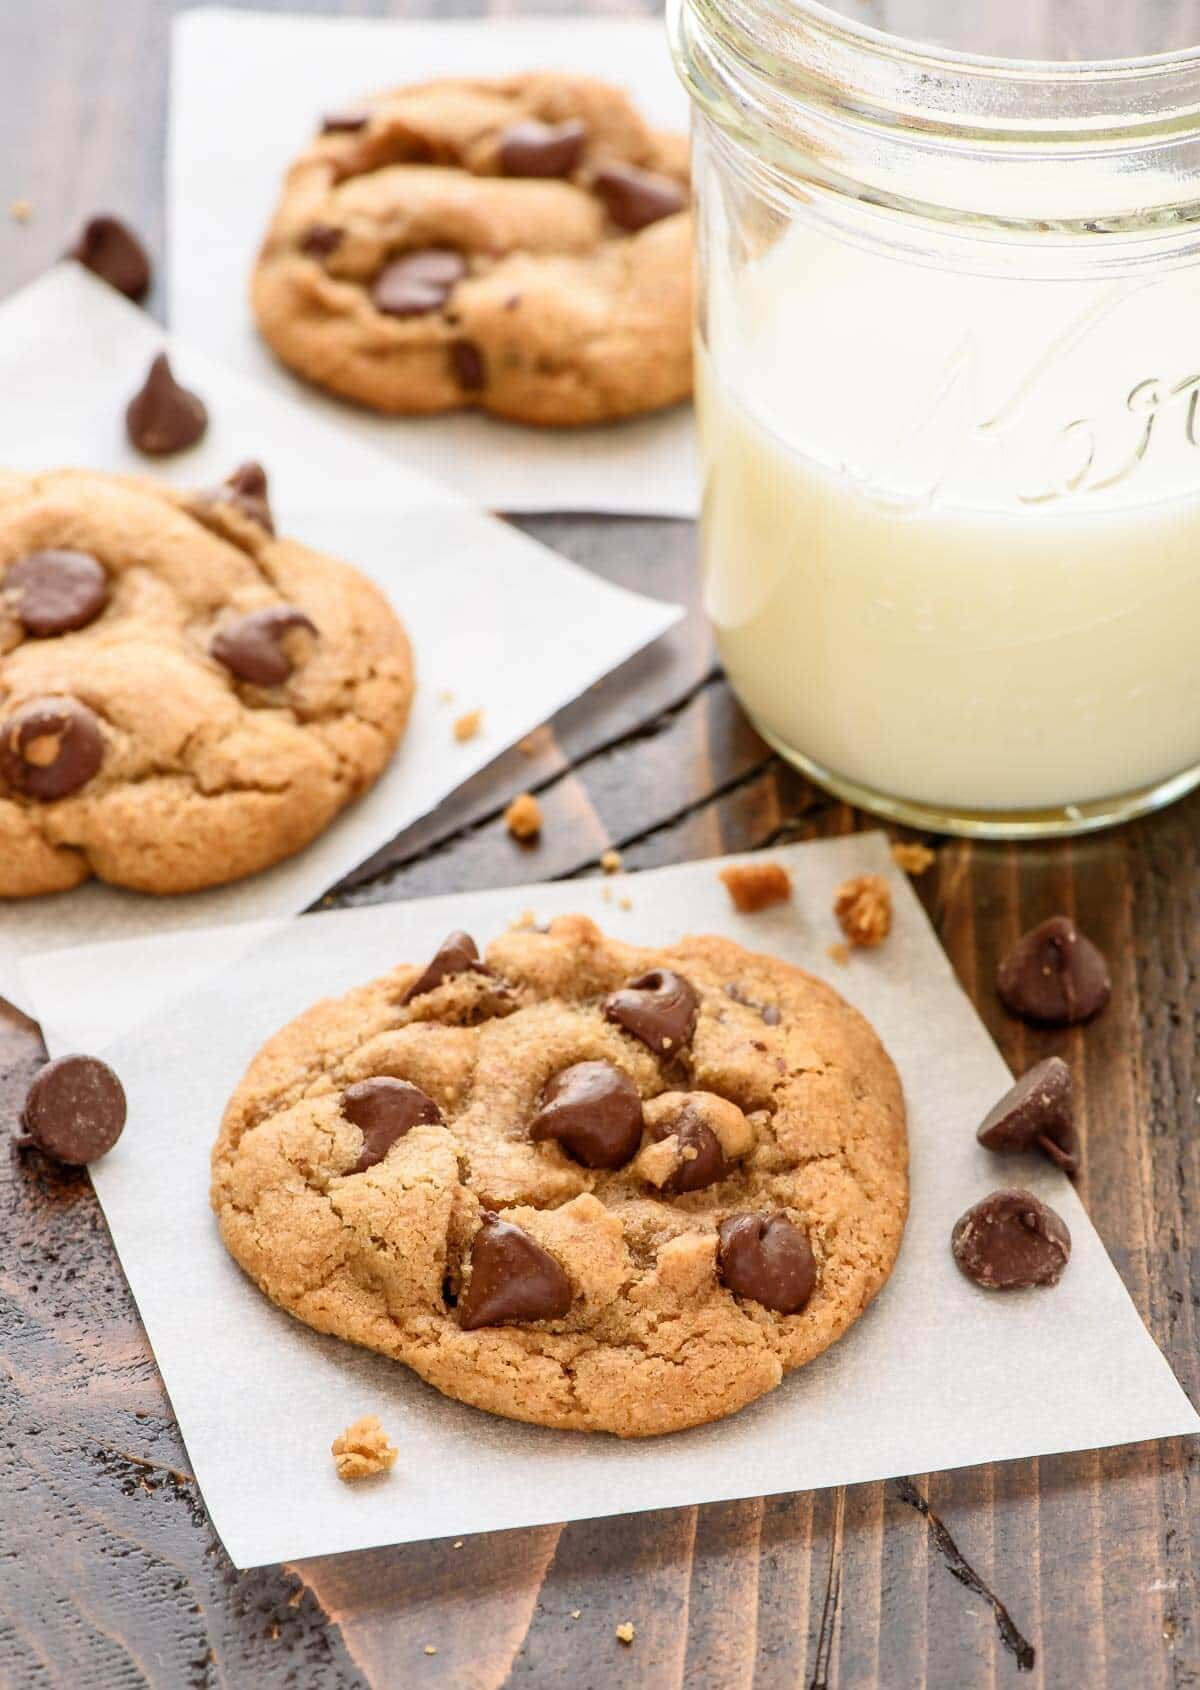 Chocolate Chip Coconut Oil Cookies